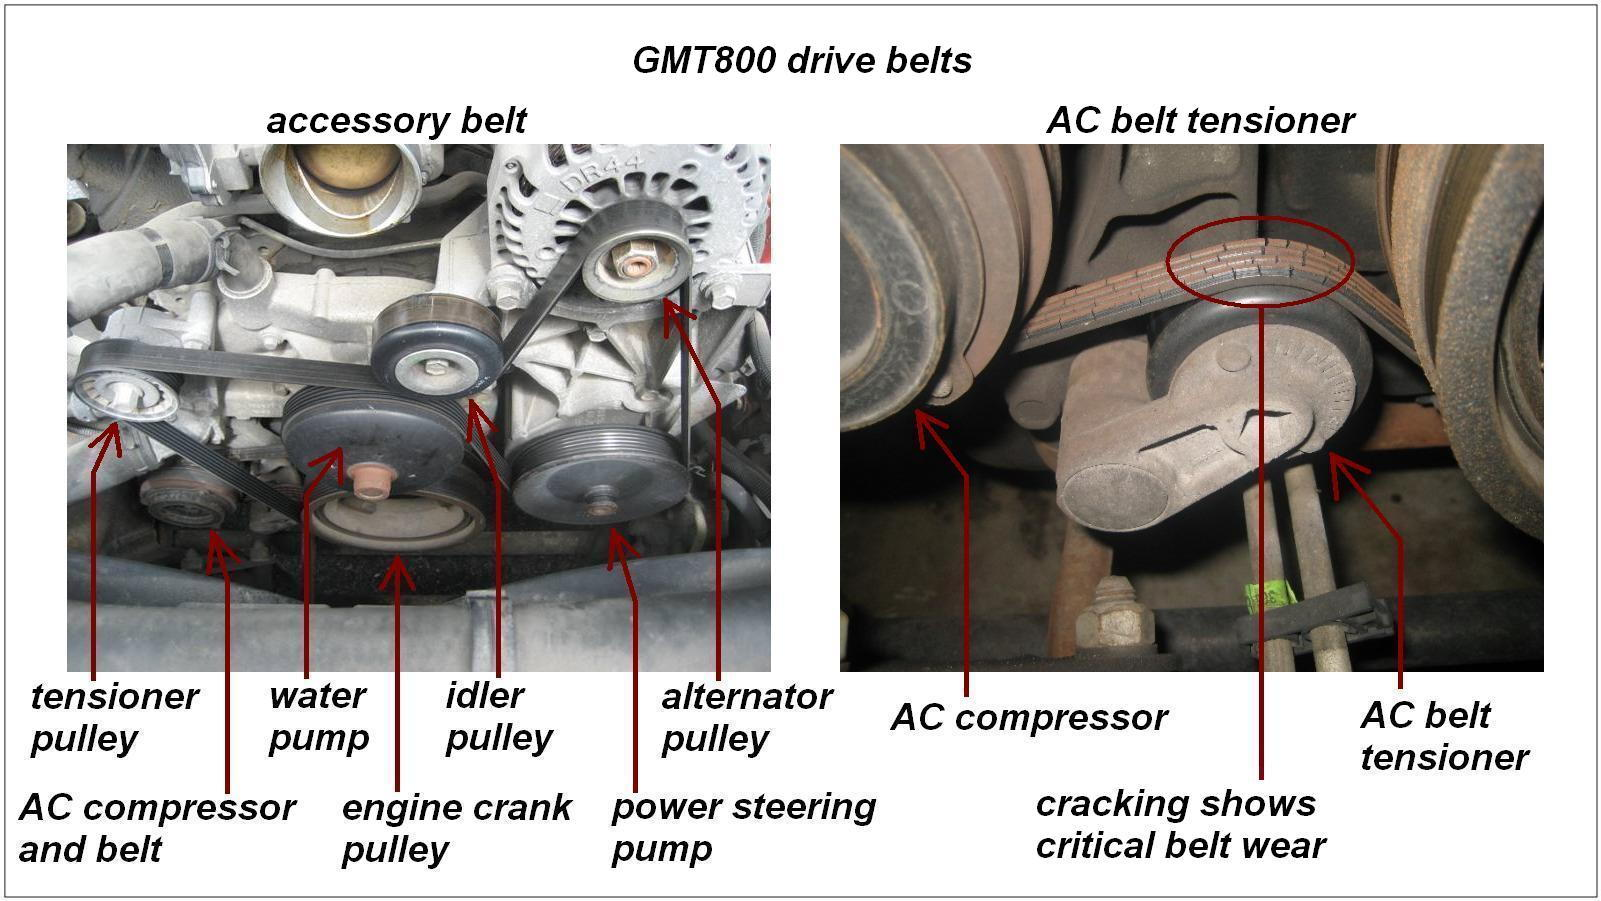 Chevrolet Silverado 1999 2006 How To Replace A C Belt Tensioner 392577 likewise Gmc Yukon 6 0 2005 Specs And Images besides Fuel Pump For 1999 Chevy Silverado together with 359624 2004 2008 Fuel Filter Change Pictures 5 together with 3729206 Help Id Lt 1 Water Pump Ports Please. on 2003 chevy suburban oil change pump